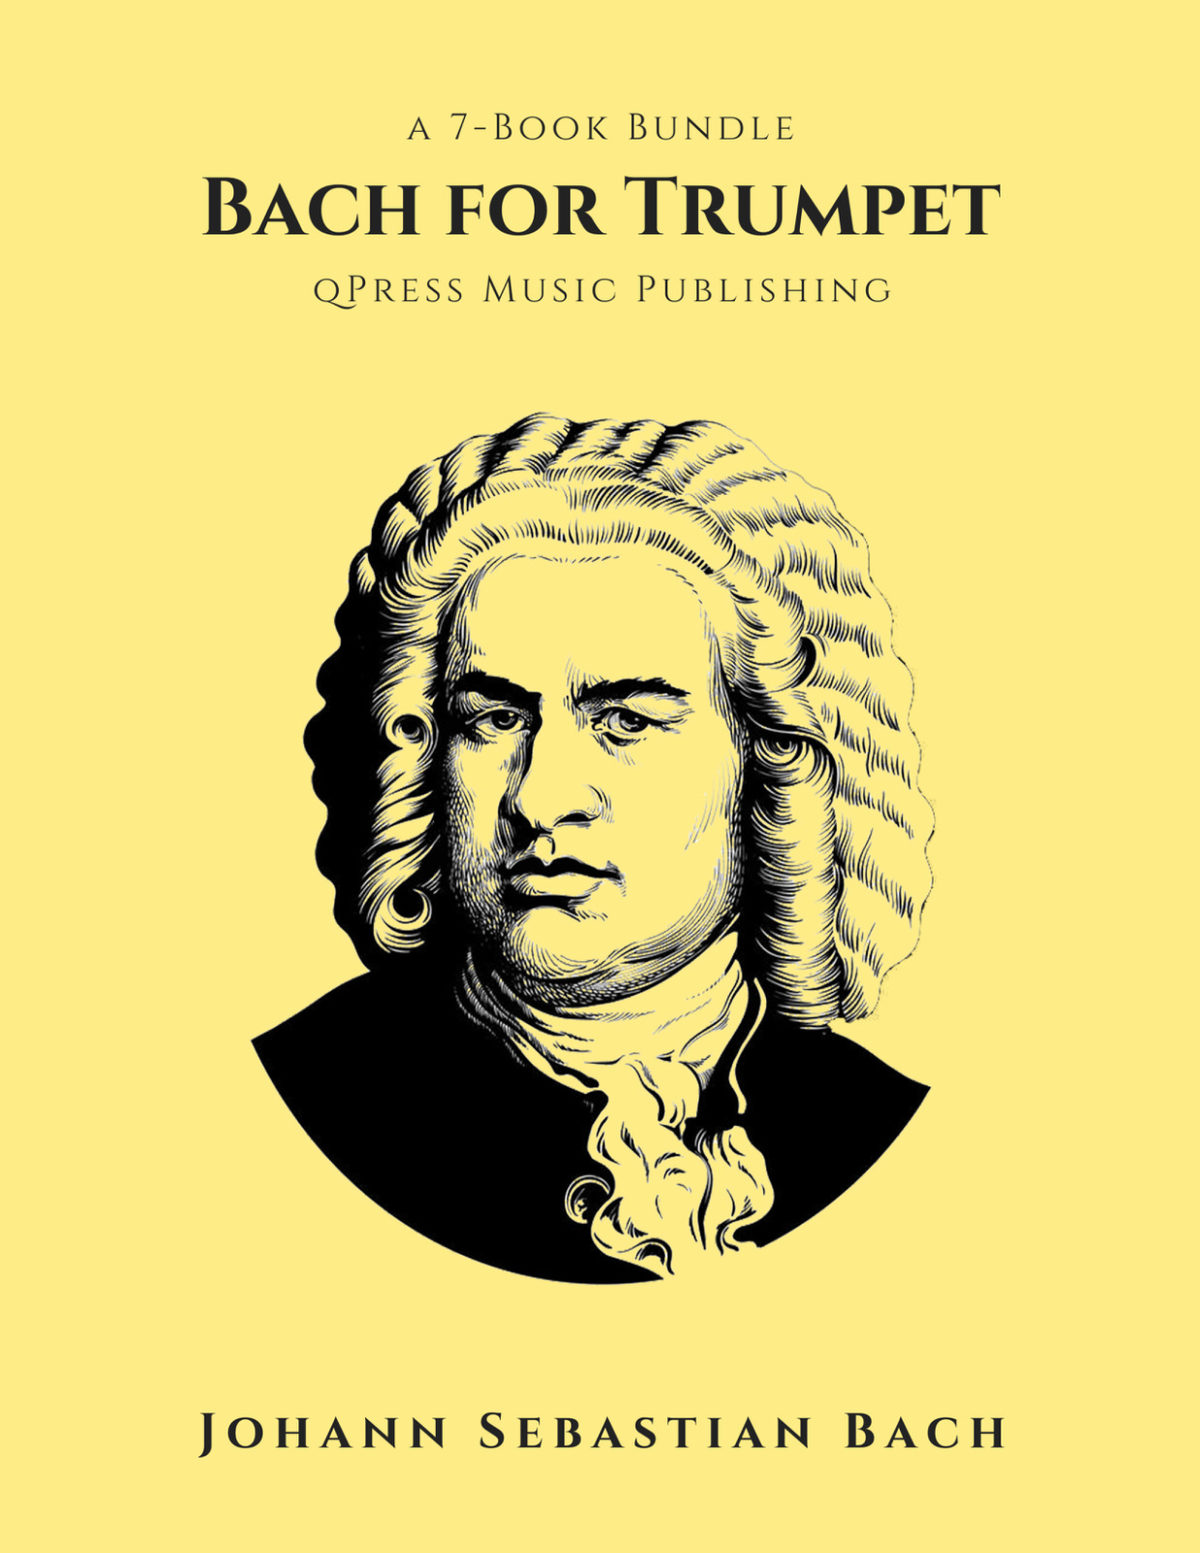 Bach for Trumpet